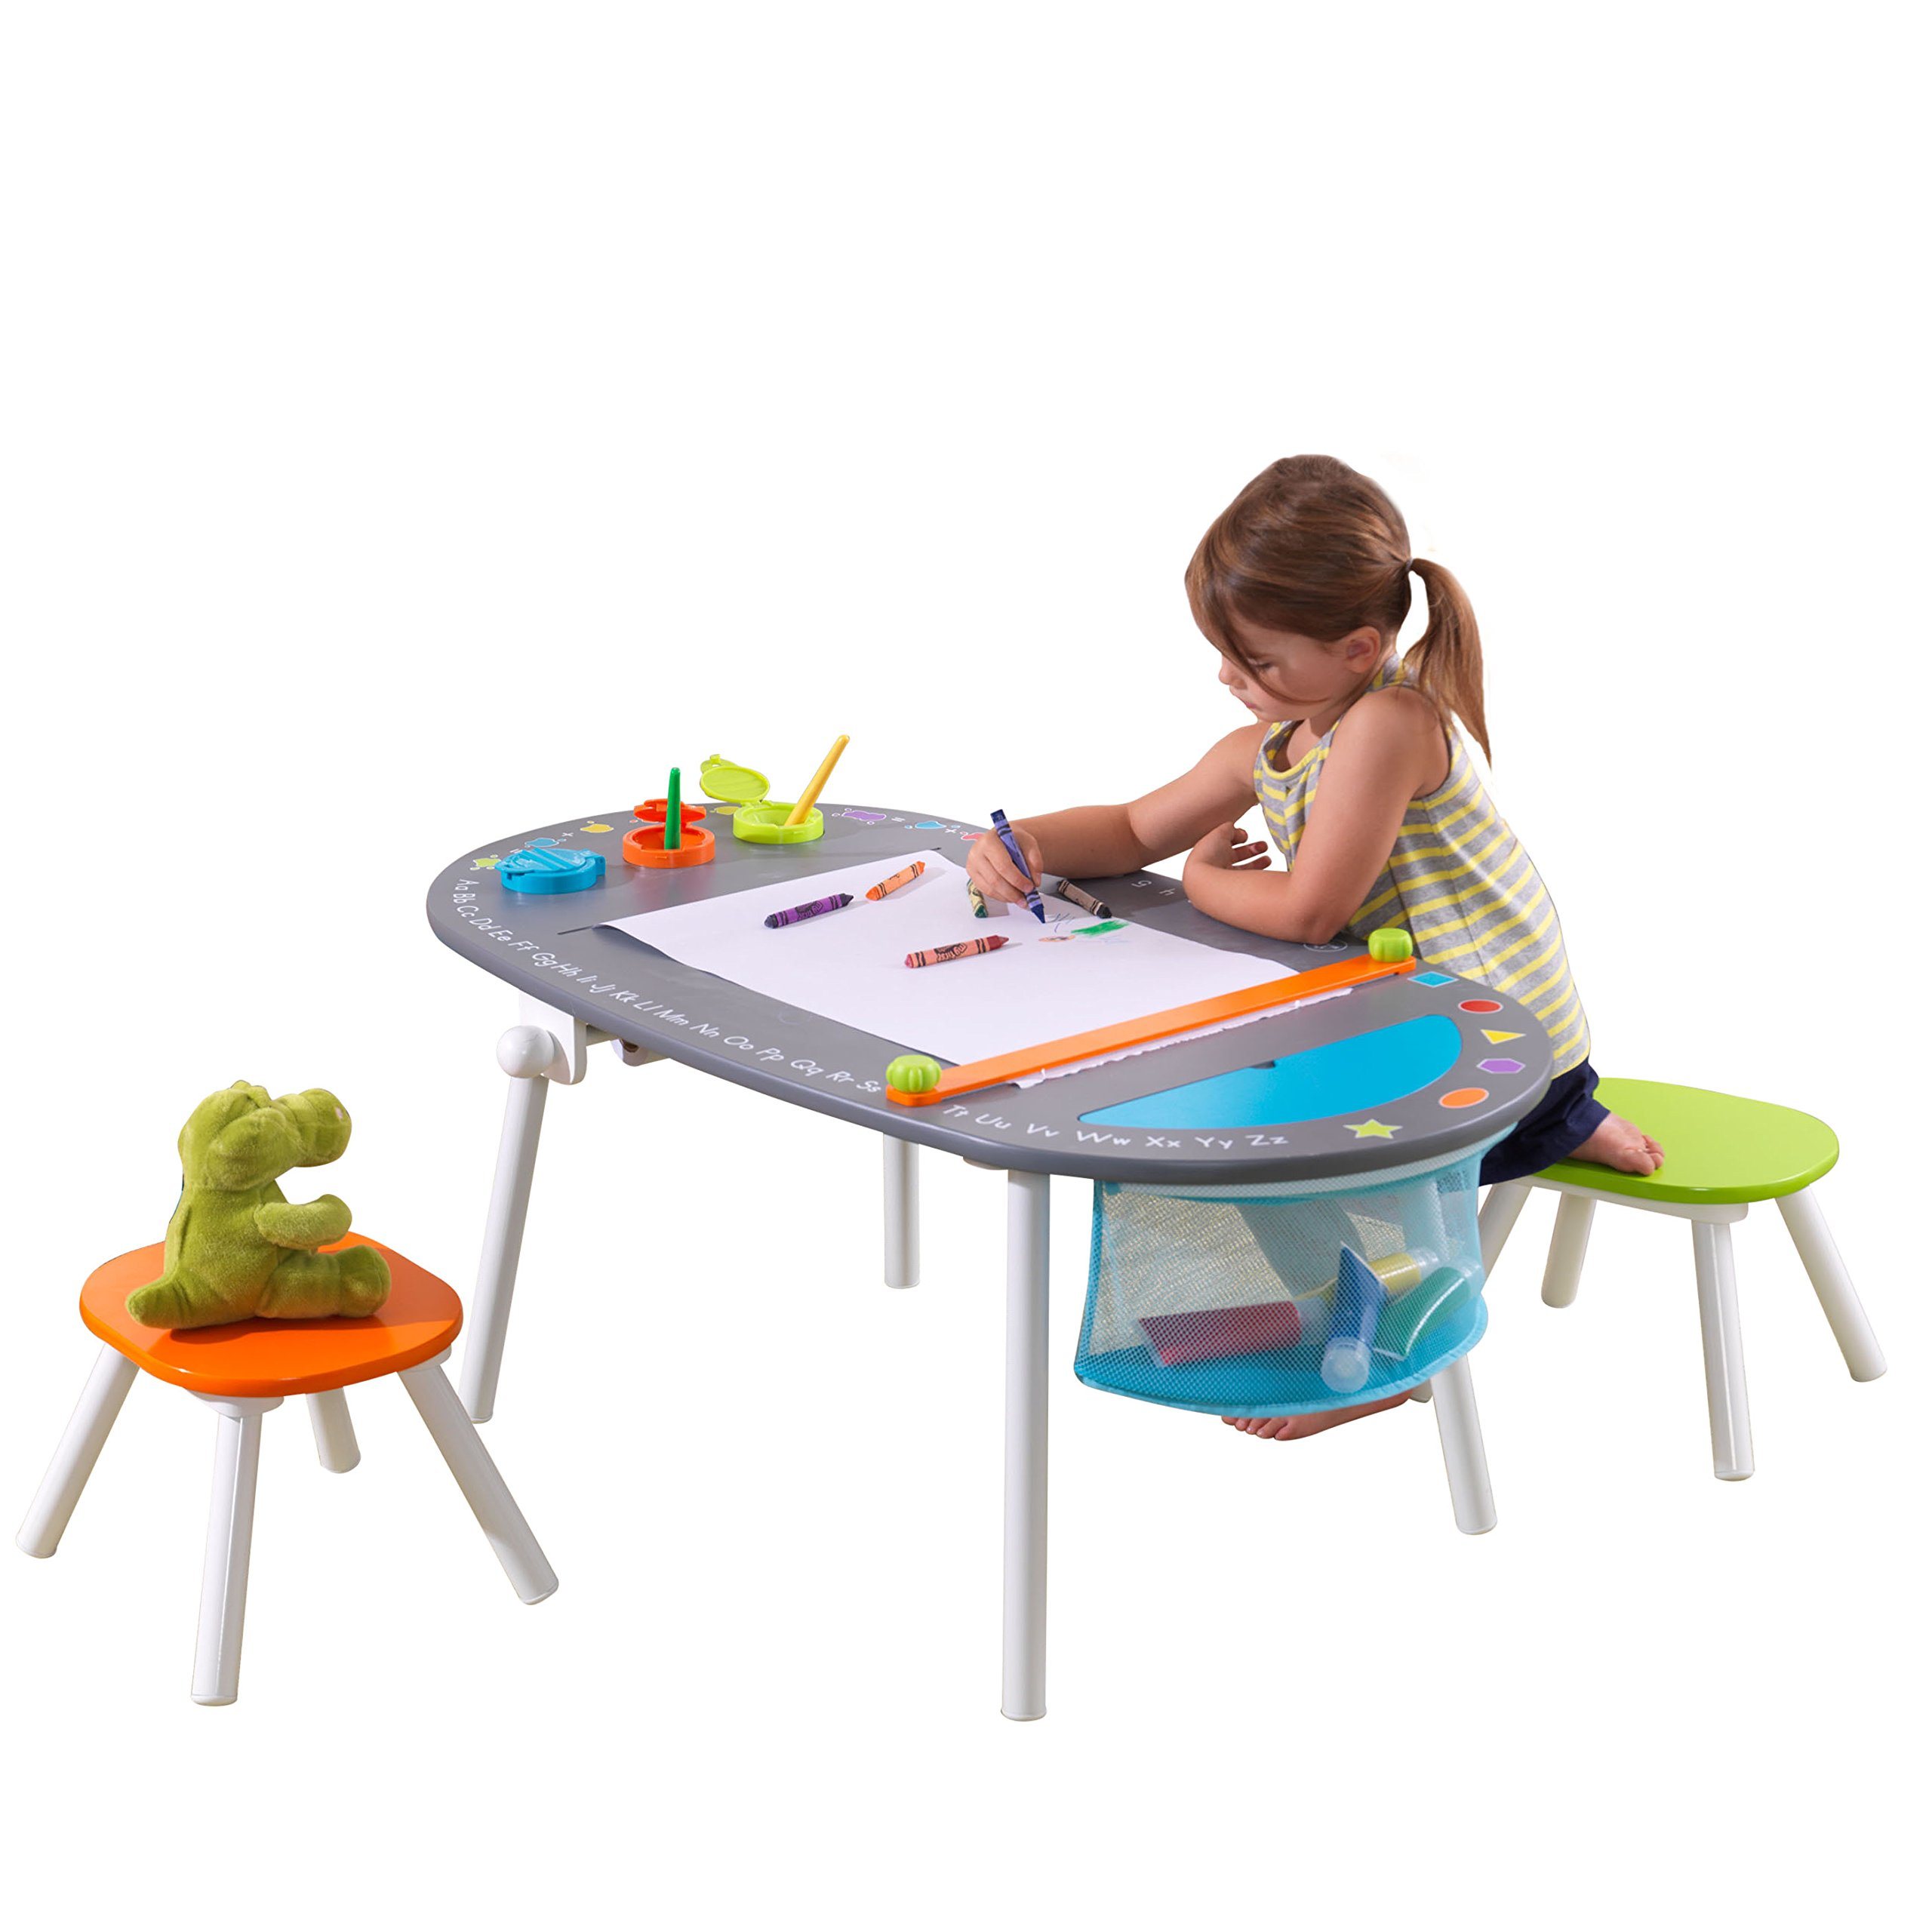 KidKraft Chalkboard Art Table & Stool Others